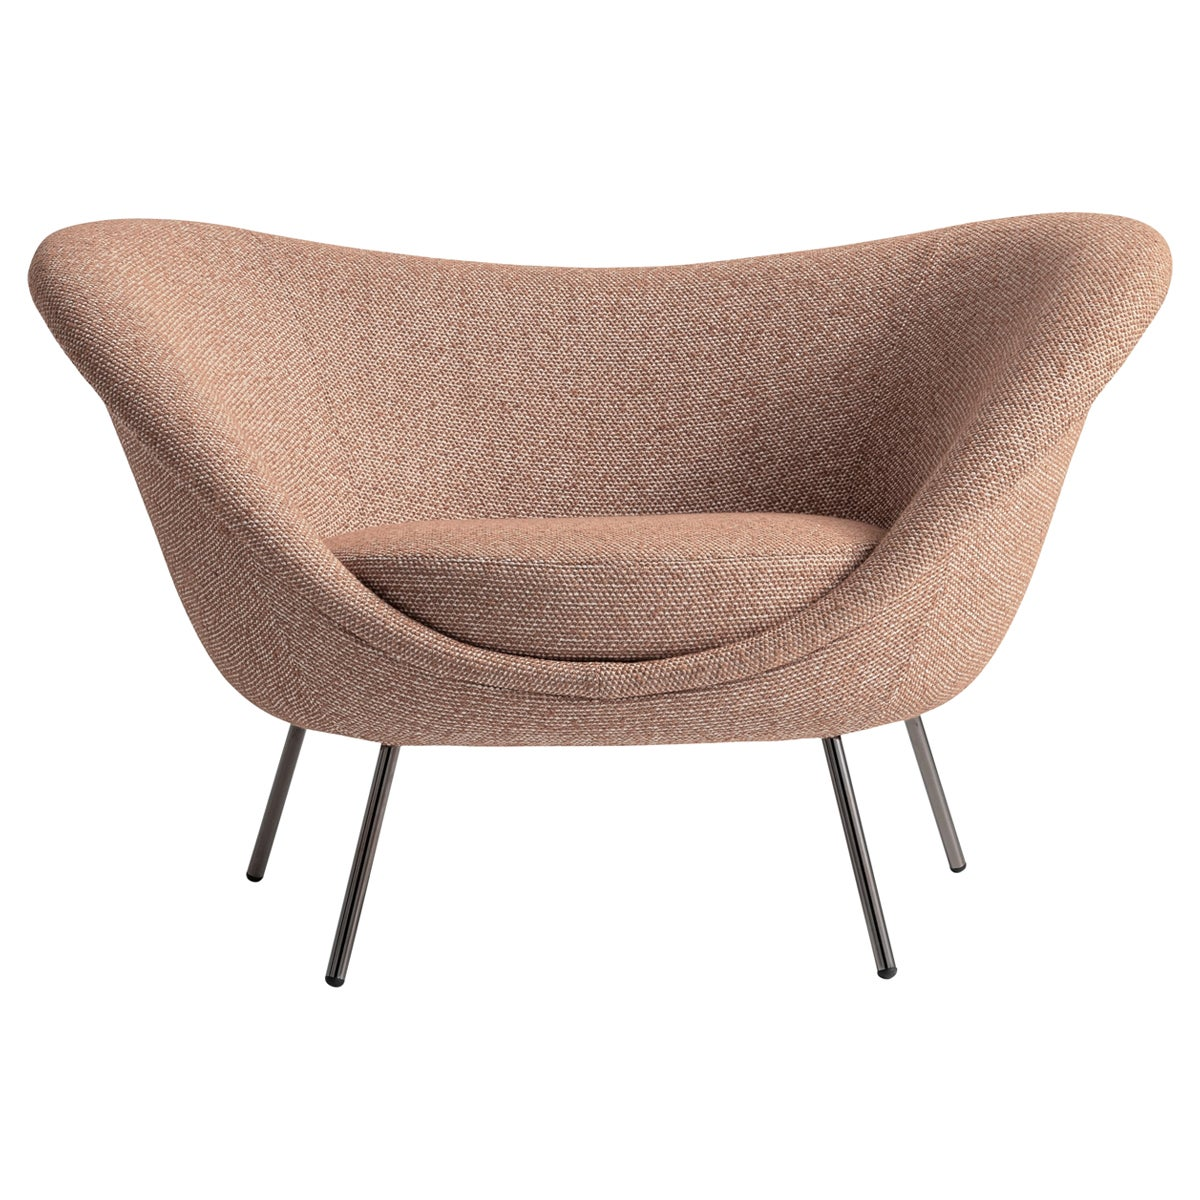 Molteni&C D.154.2 Armchair in Boucle by Gio Ponti